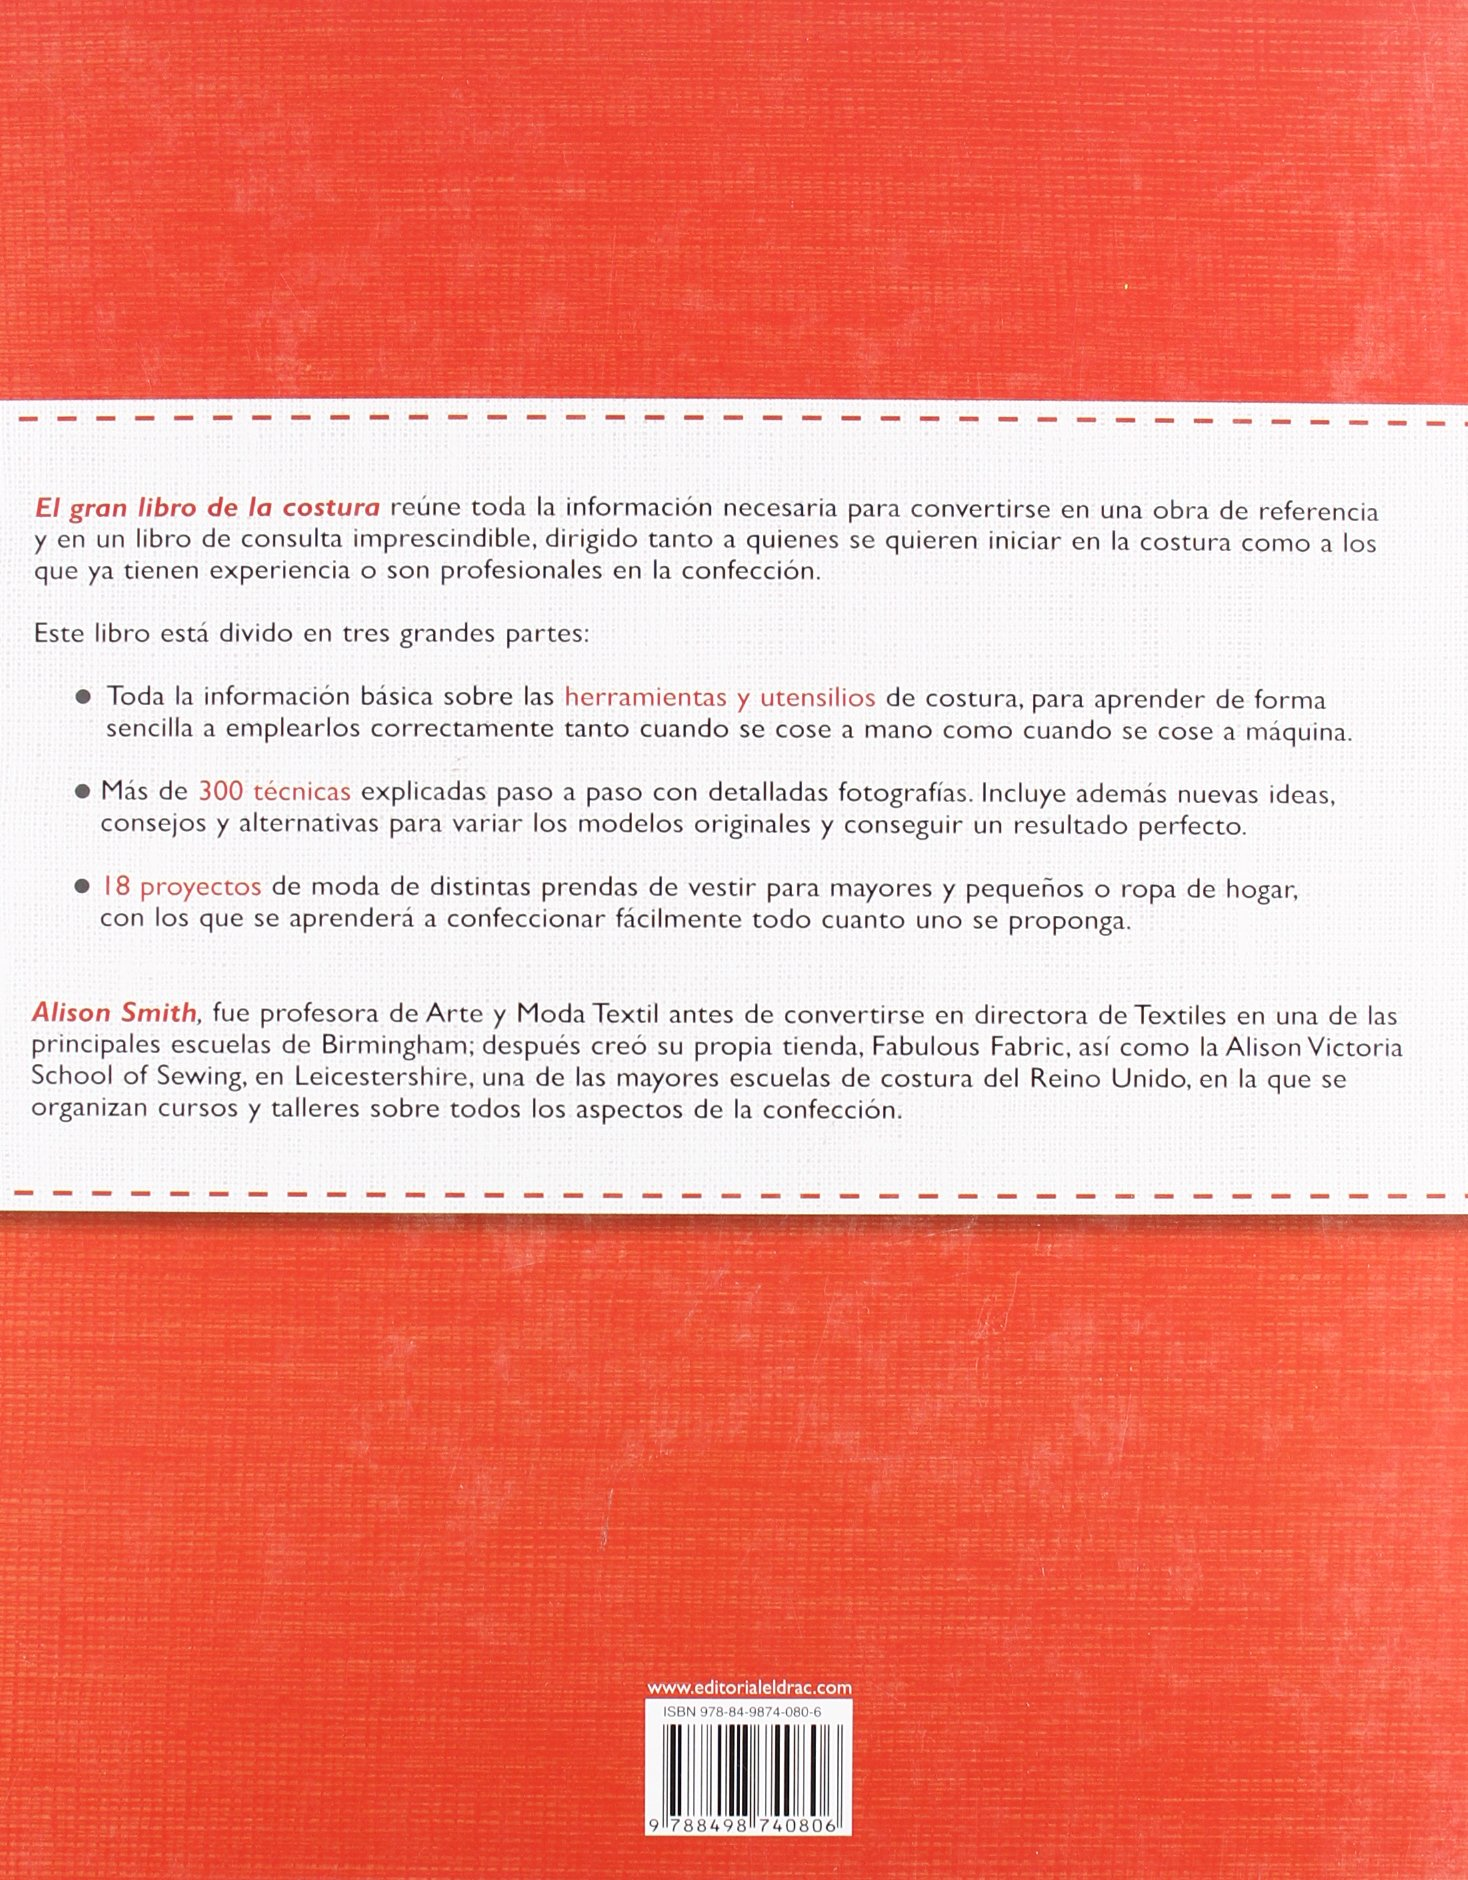 El gran libro de la costura / The Sewing Book: Mas de 300 tecnicas paso a paso. 18 proyectos creativos. Nuevas ideas de confeccion basica y ... Techniques.